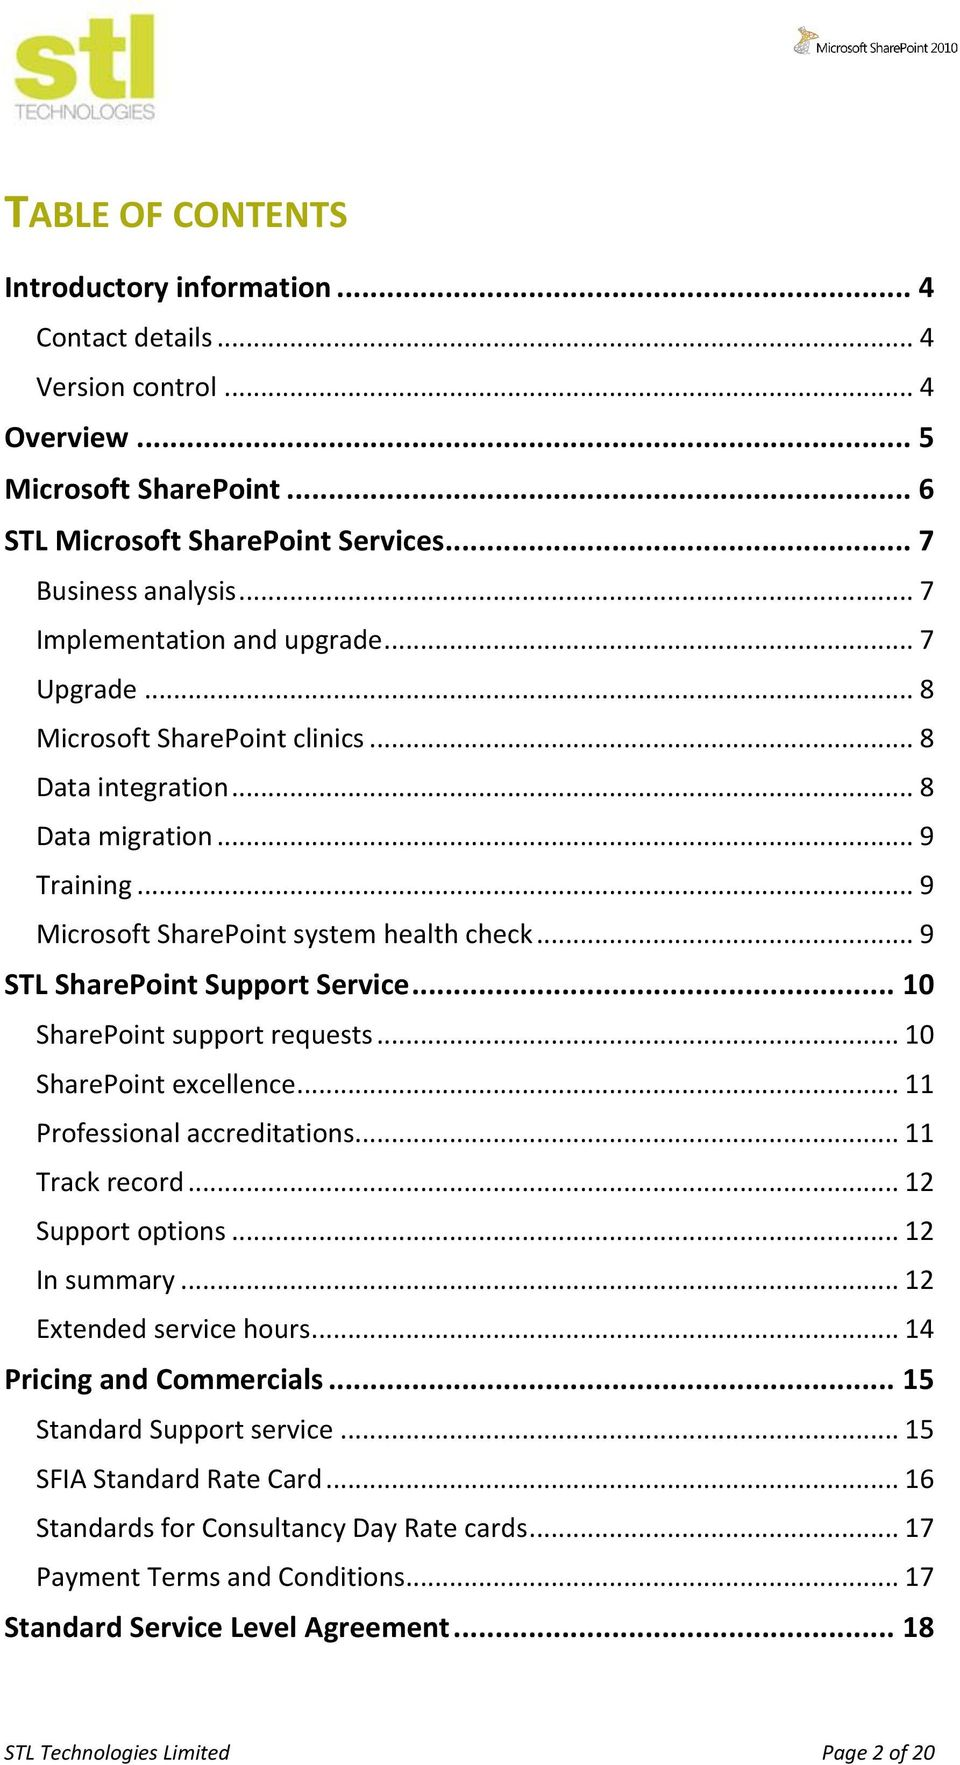 .. 9 STL SharePoint Support Service... 10 SharePoint support requests... 10 SharePoint excellence... 11 Professional accreditations... 11 Track record... 12 Support options... 12 In summary.